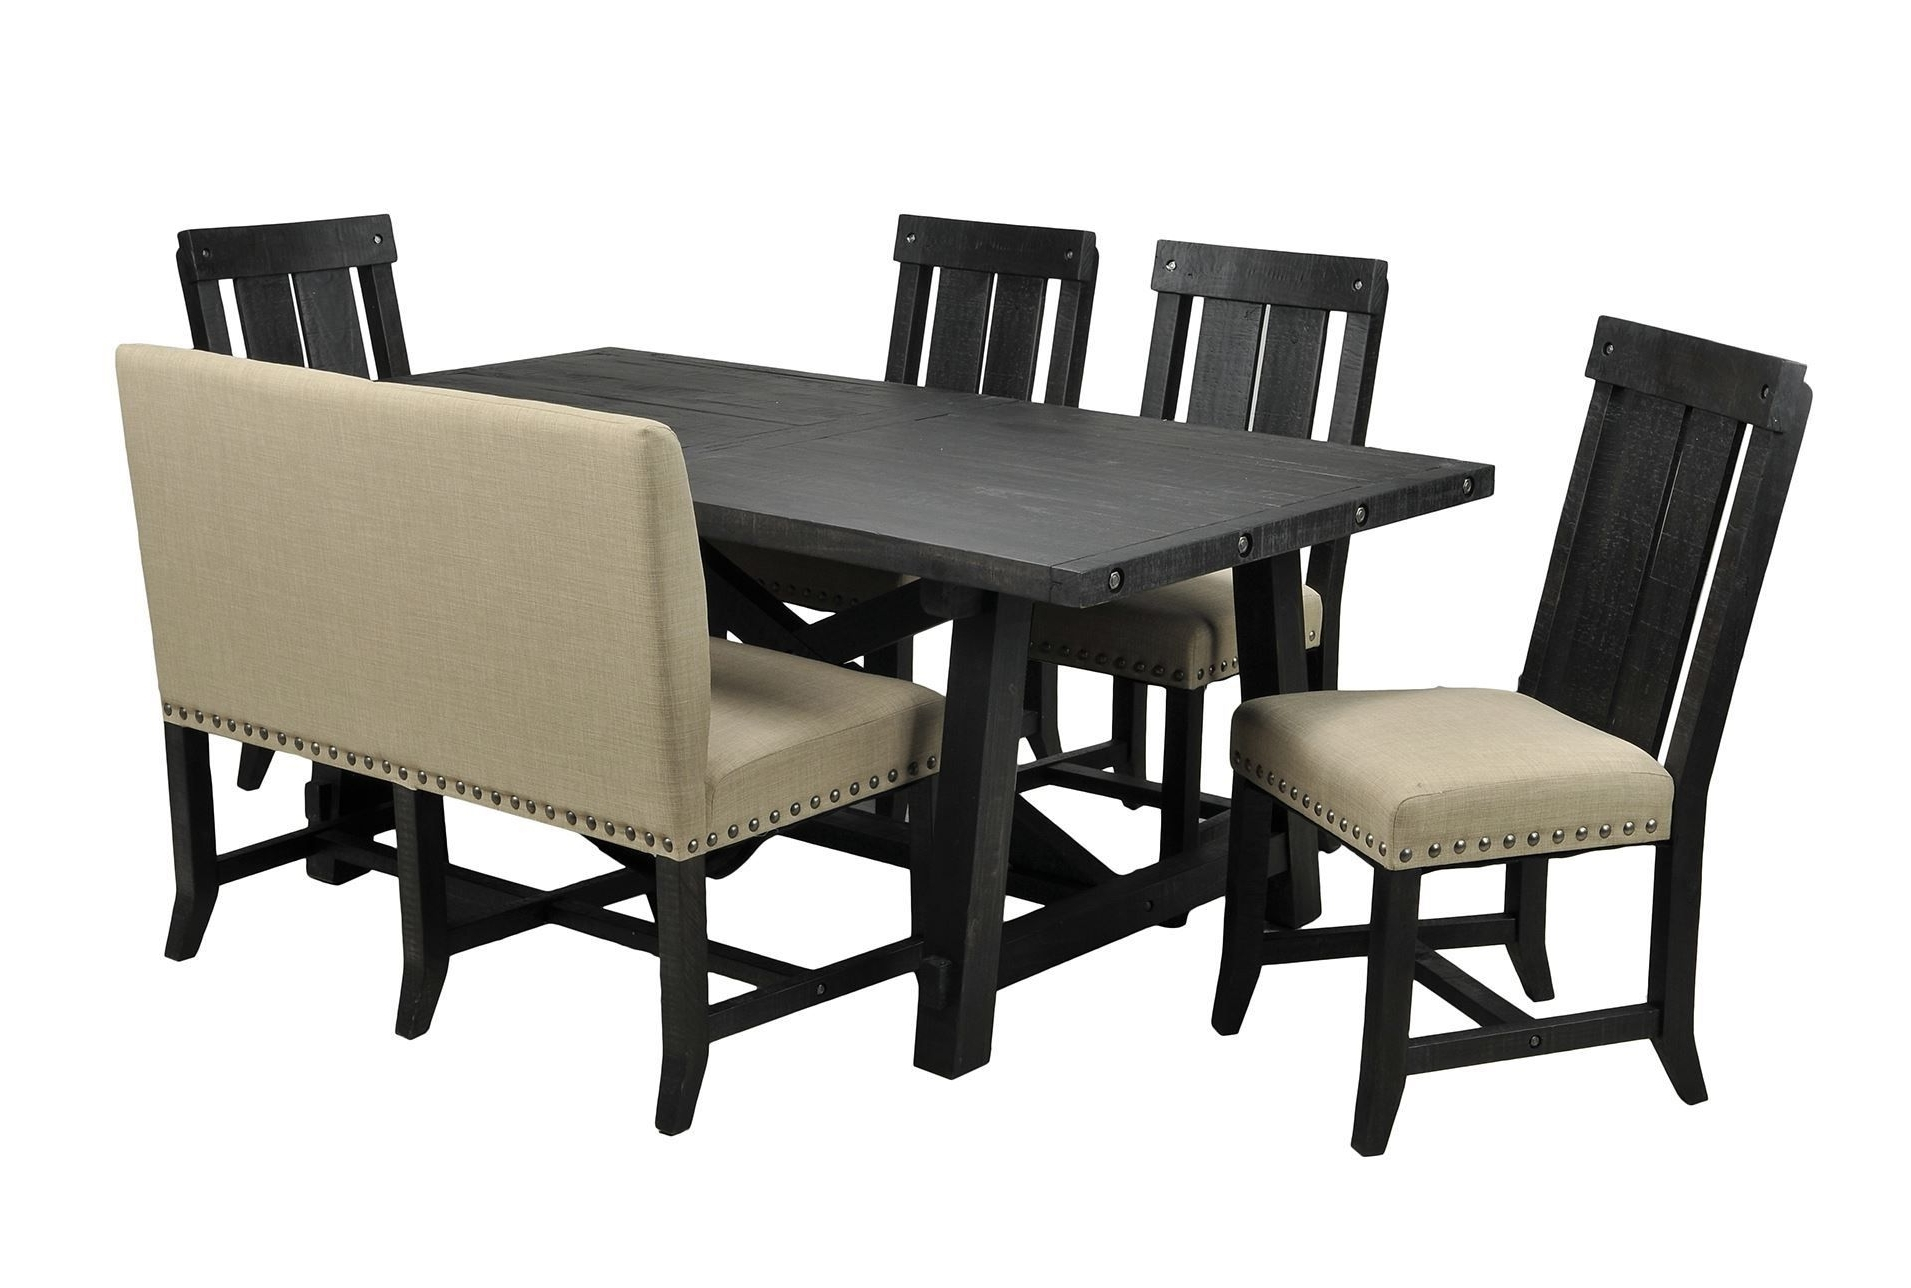 Jaxon 6 Piece Rectangle Dining Set W/bench & Wood Chairs, Café Intended For Recent Jaxon 7 Piece Rectangle Dining Sets With Upholstered Chairs (View 4 of 25)